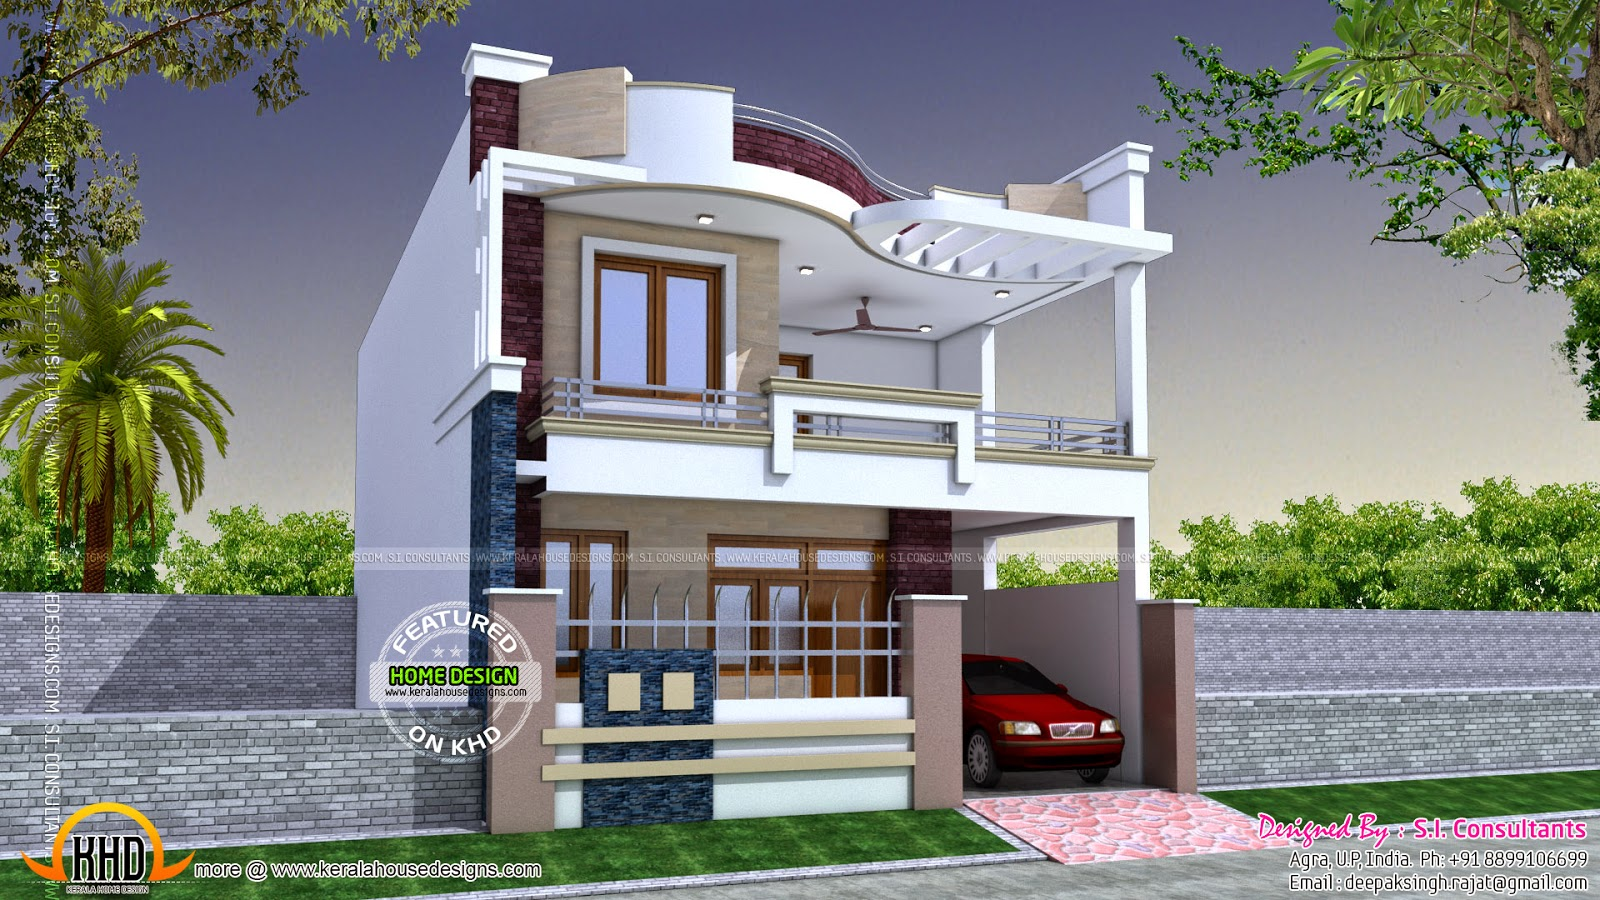 Modern indian home design kerala home design and floor plans for Home design sites